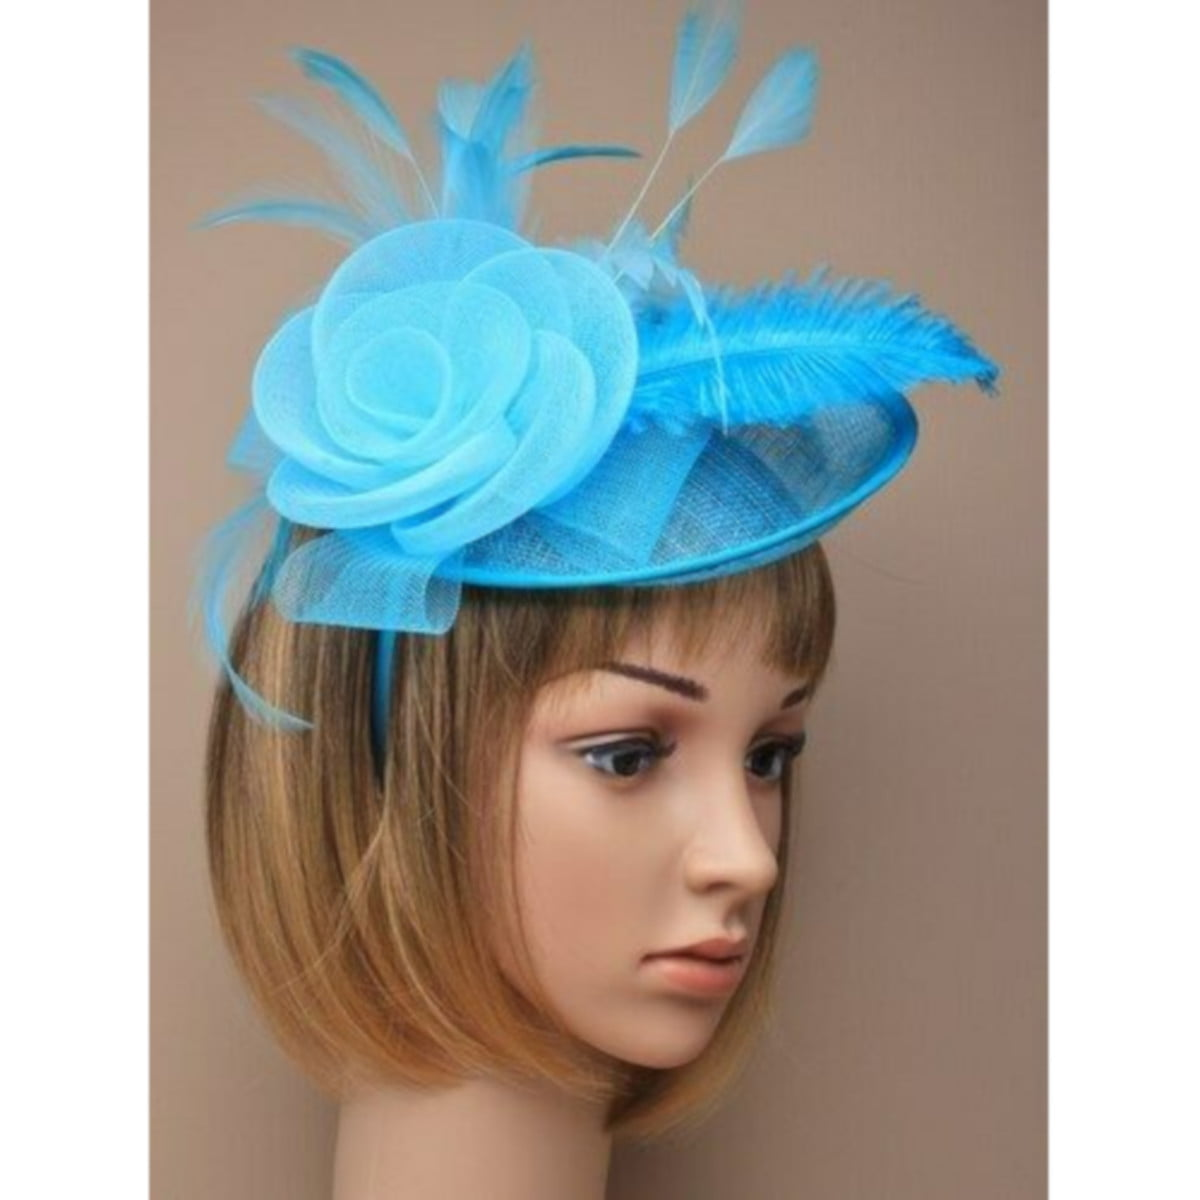 Ladies aqua fascinator with feathers and flower on alice band.